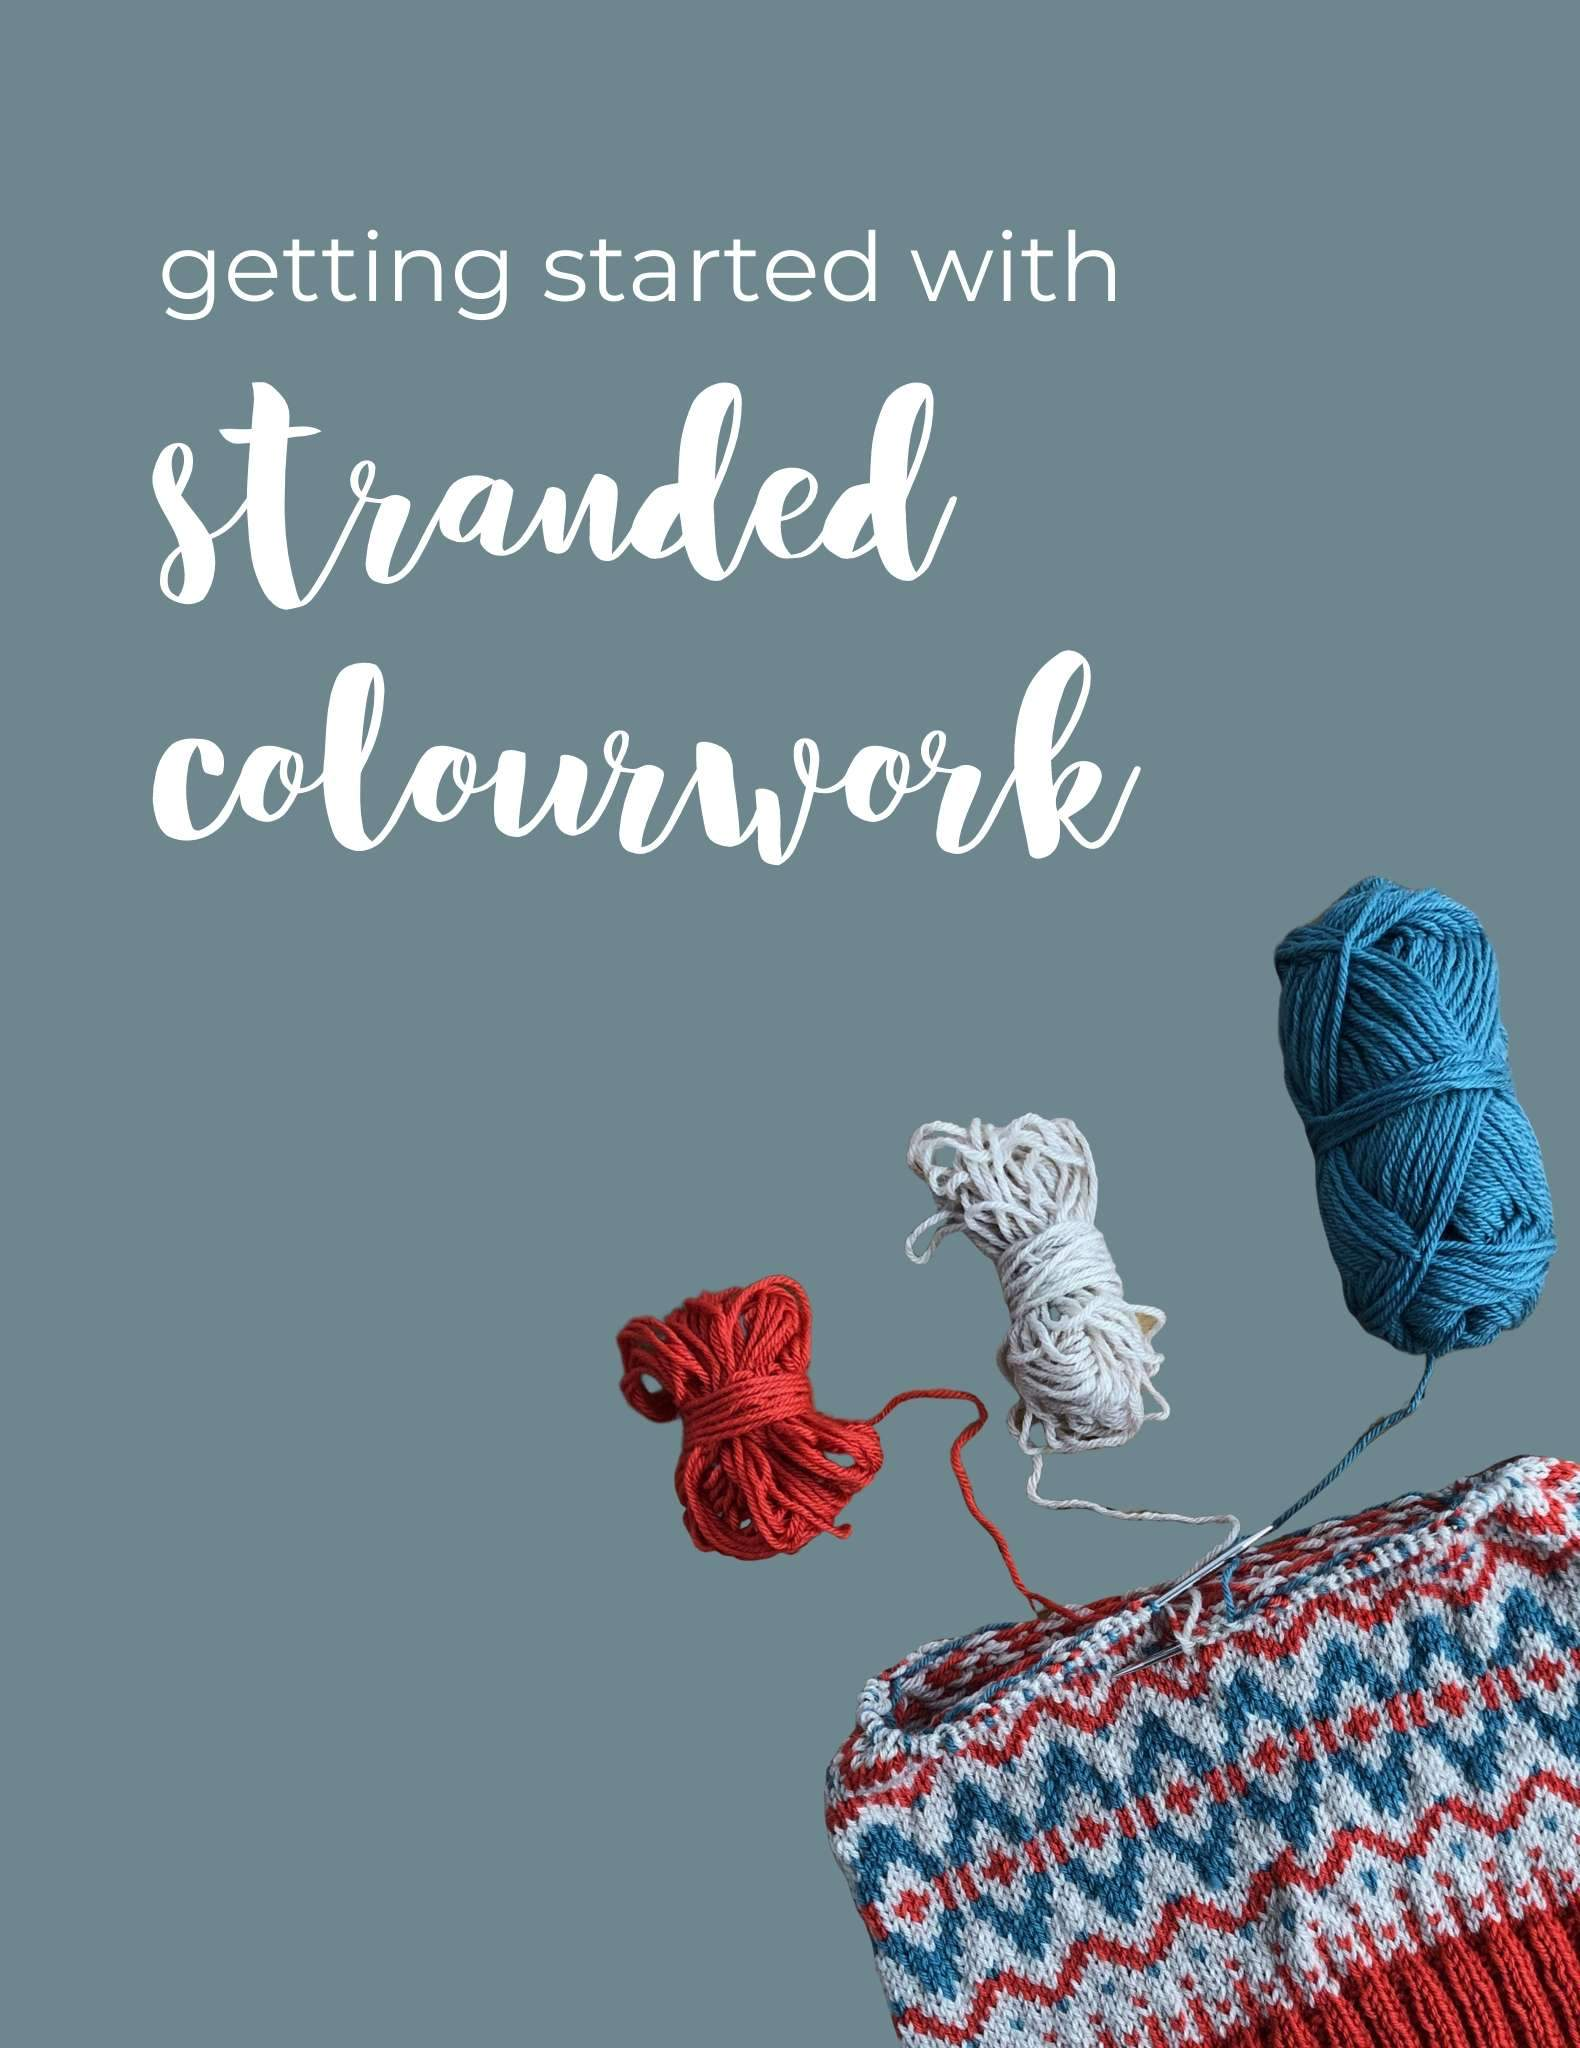 Getting Started With Colourwork